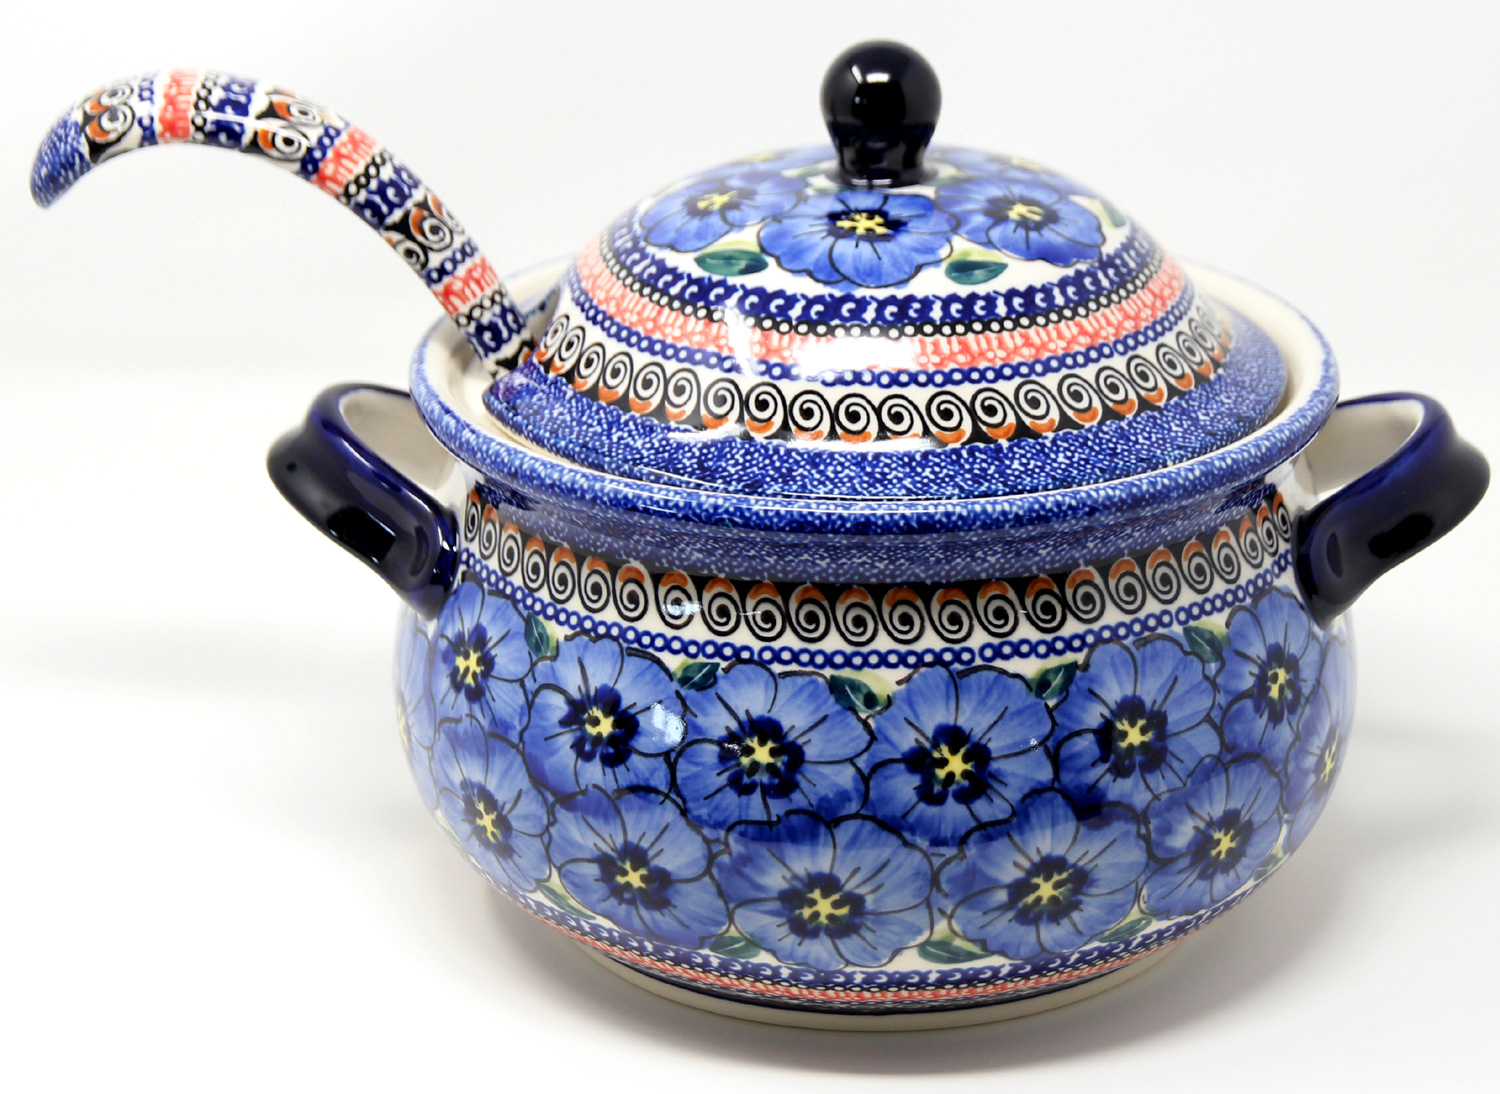 Soup Tureen with Ladle in Regal Bouquet Polish Pottery Pattern from Zaklady